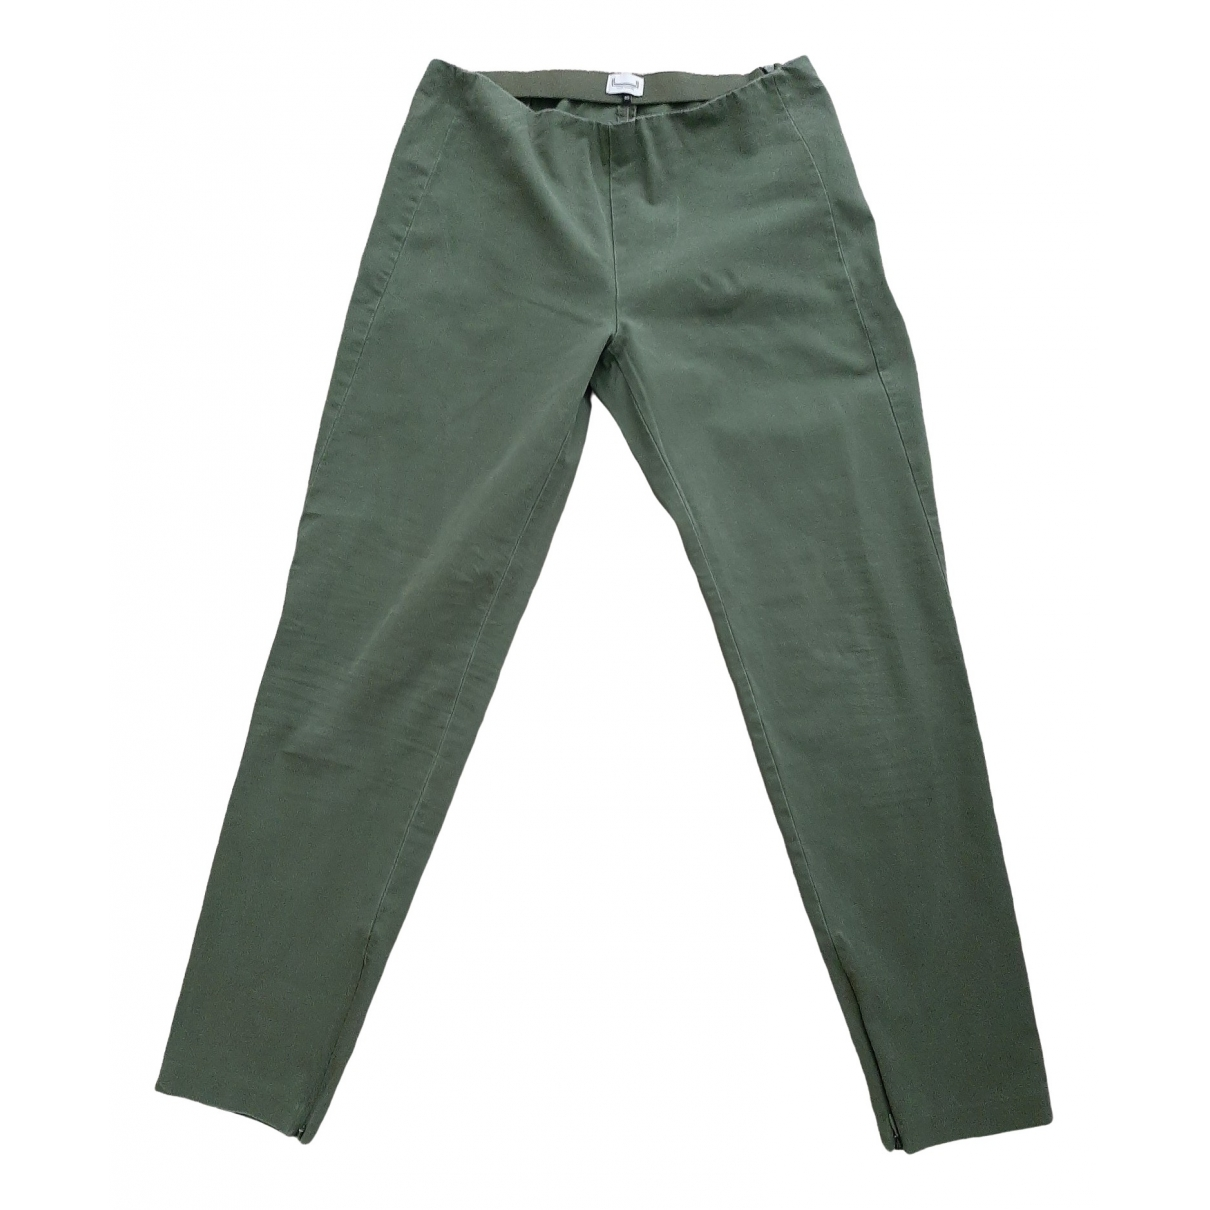 Adolfo Dominguez \N Green Cotton Trousers for Women 40 FR